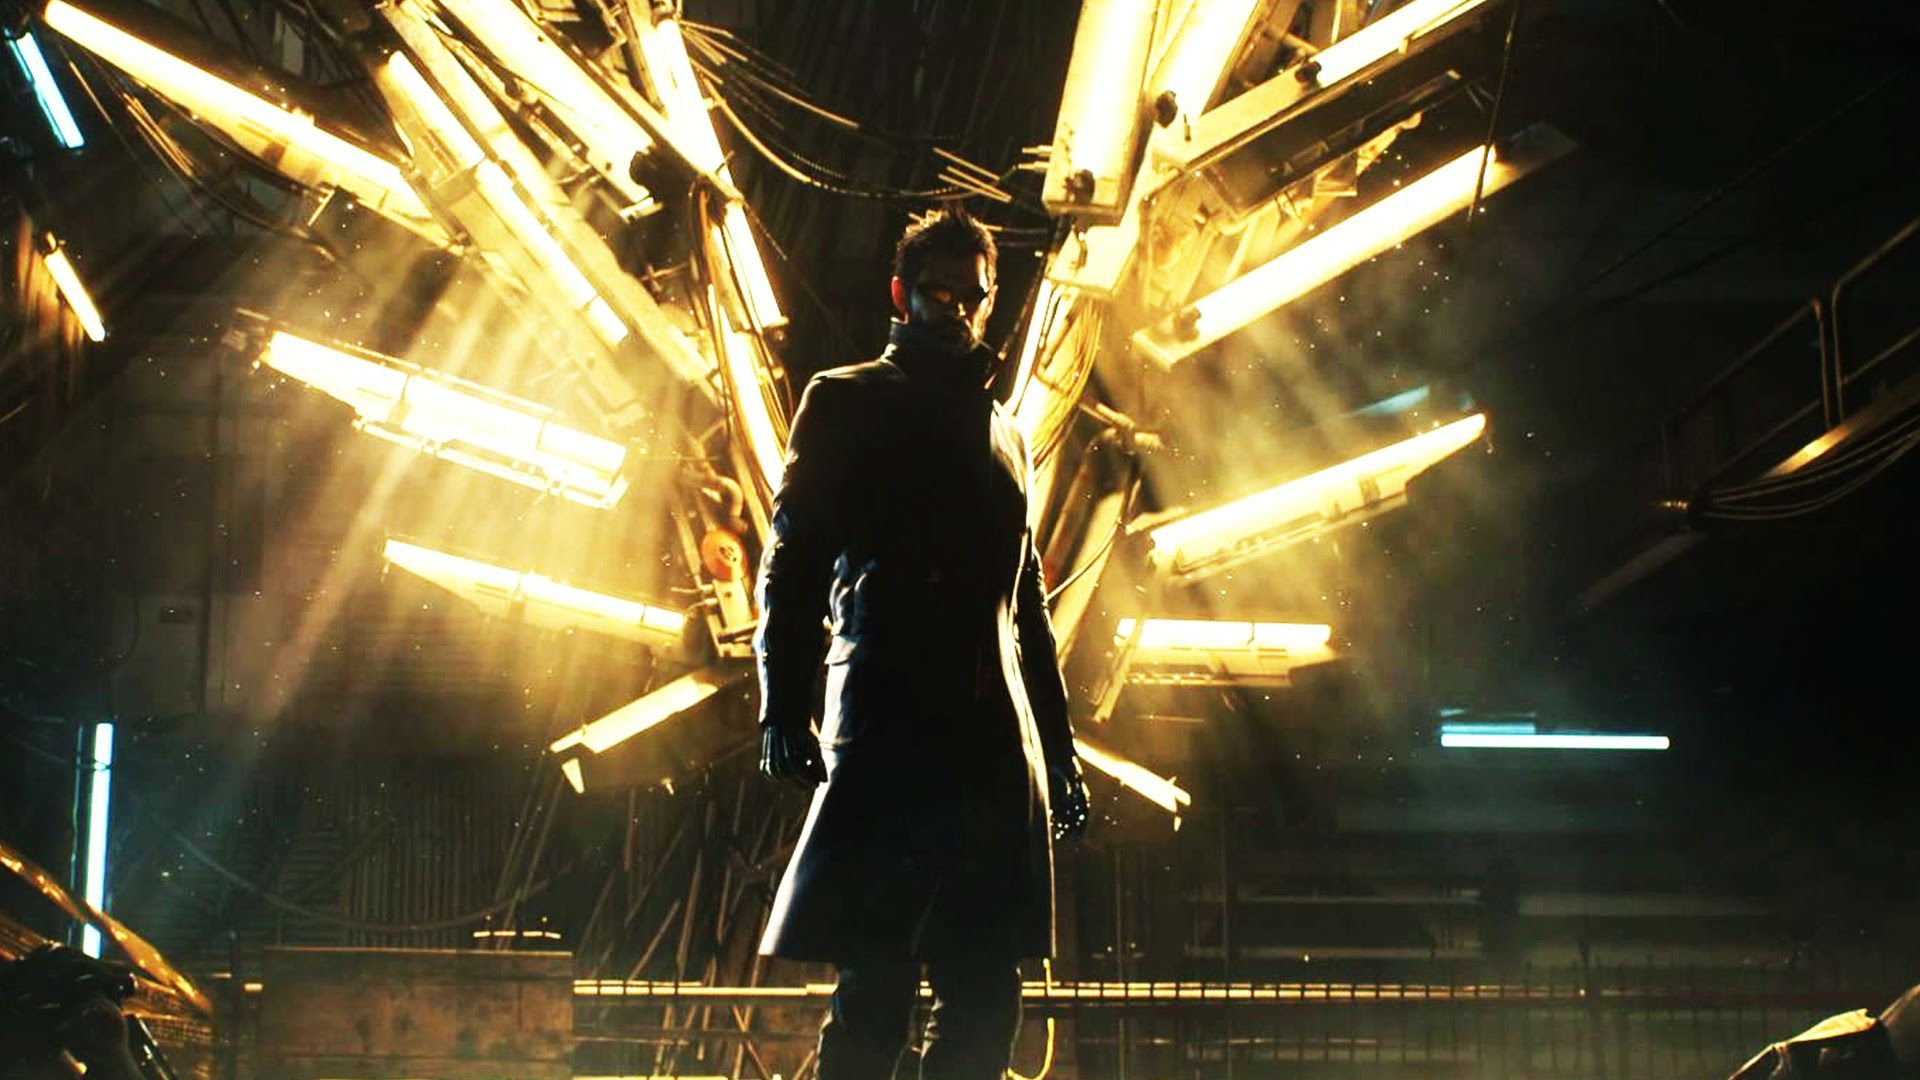 Deus Ex Mankind Divided Hd Wallpapers 7wallpapers Net